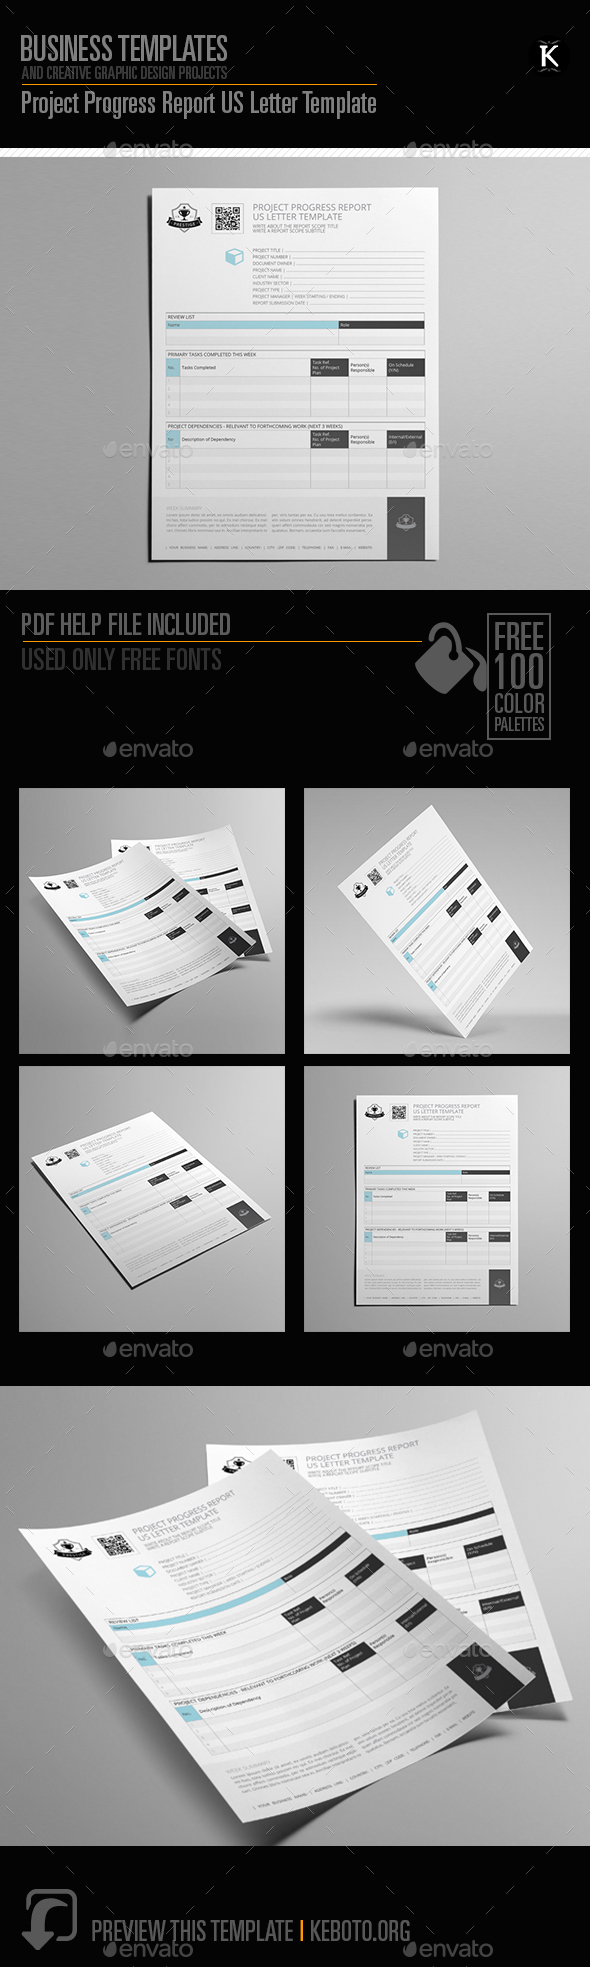 GraphicRiver Project Progress Report US Letter Template 20546270